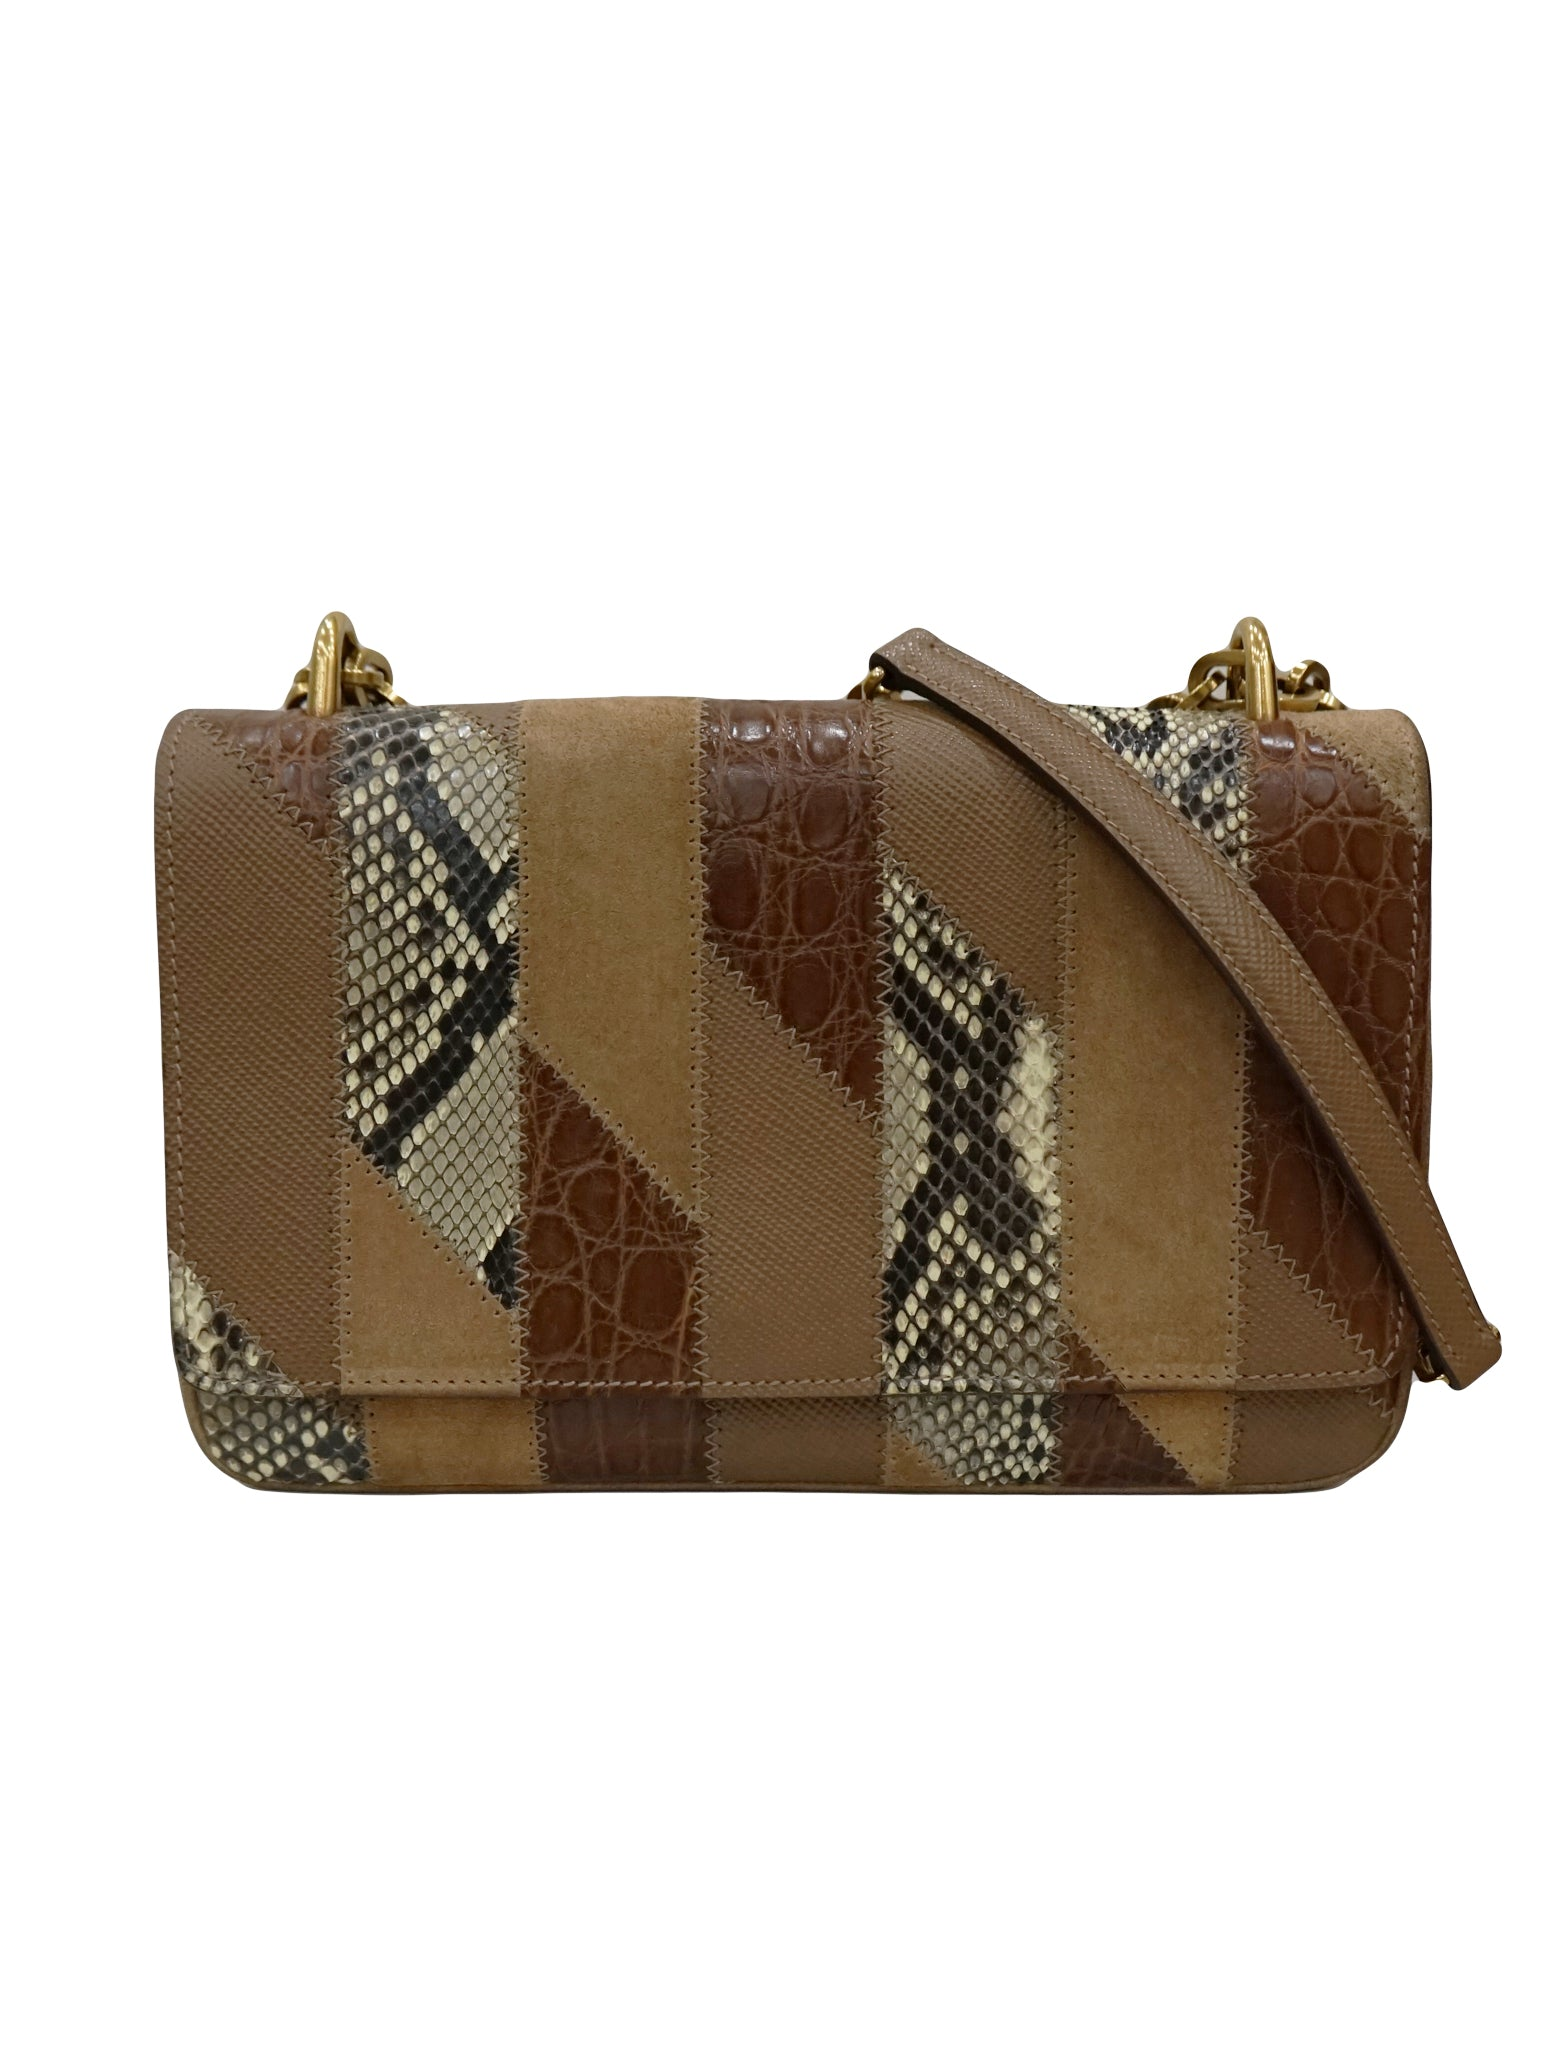 SUEDE SNAKE CROCODILE PATCHWORK BAG